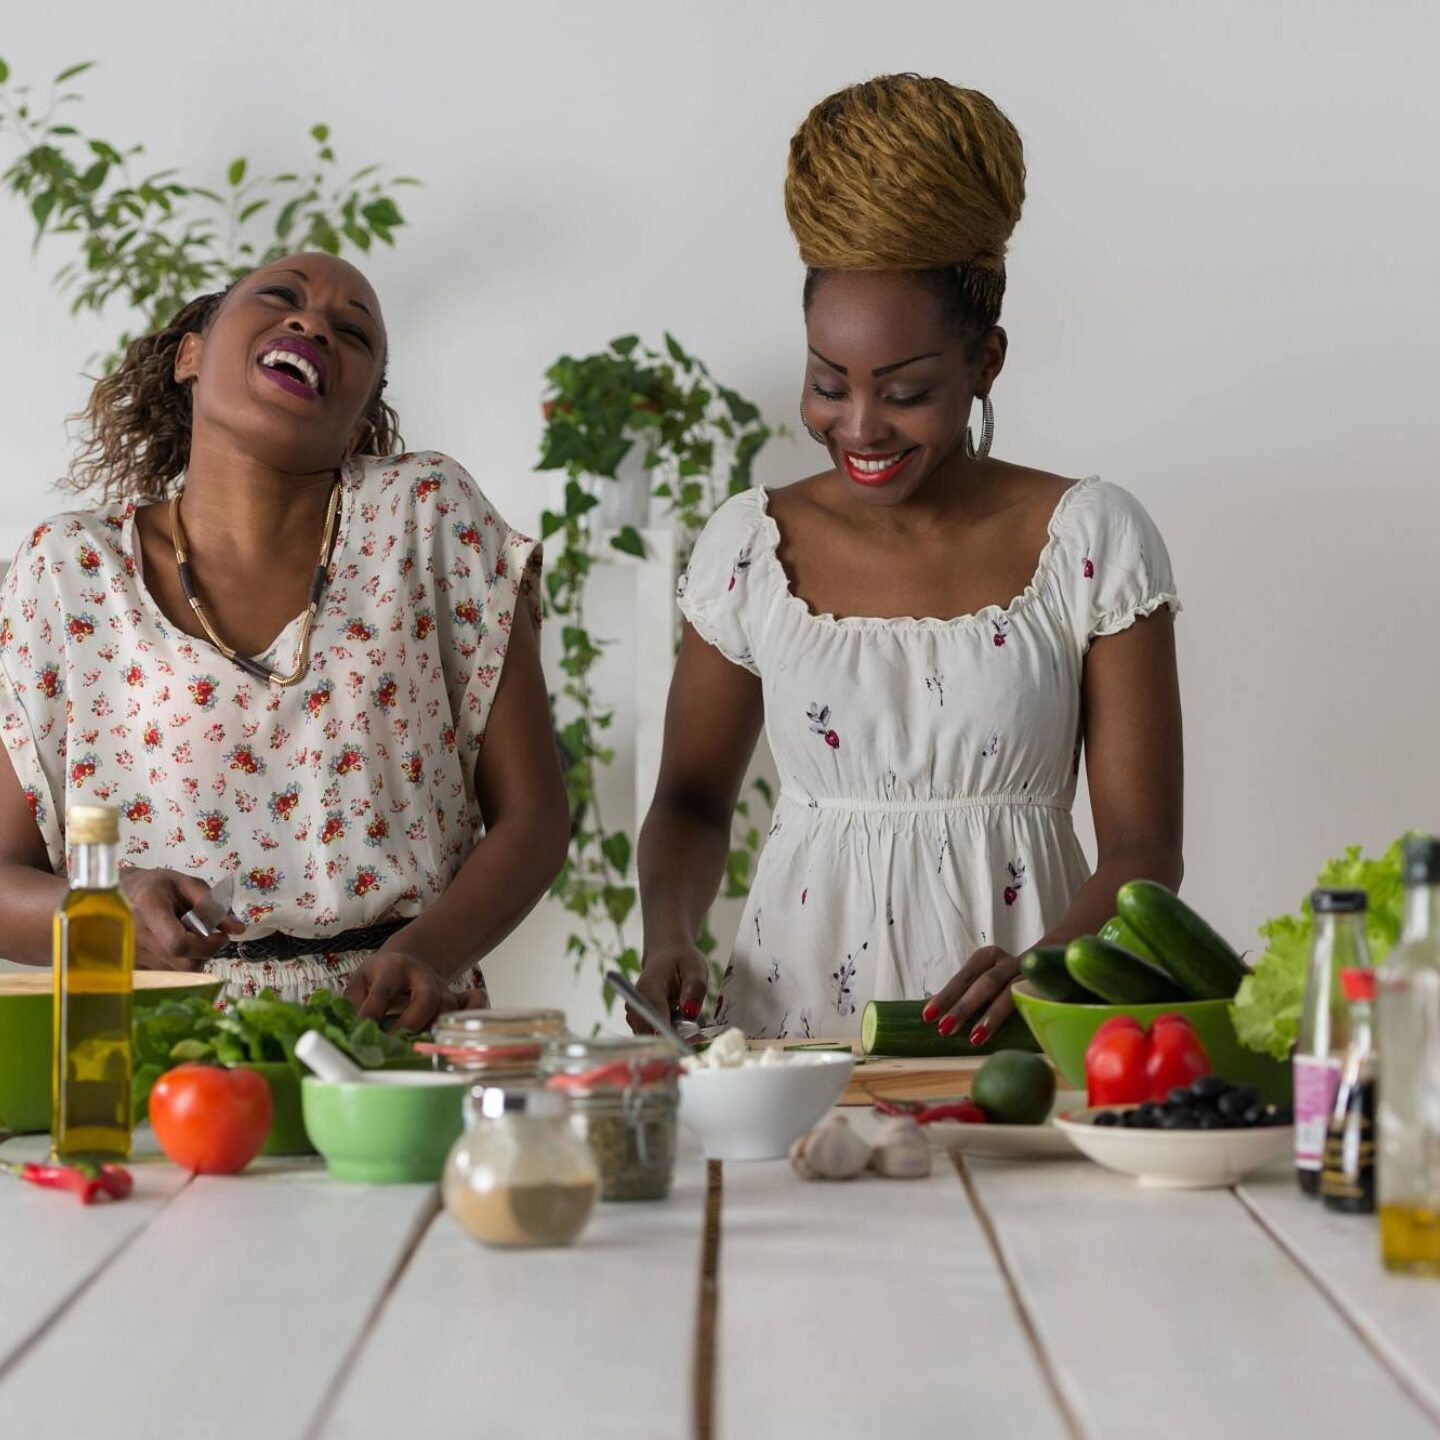 Two women cooking in kitchen making healthy food-Top 5 Cooking Safety Tips for Home Kitchen | NSF International